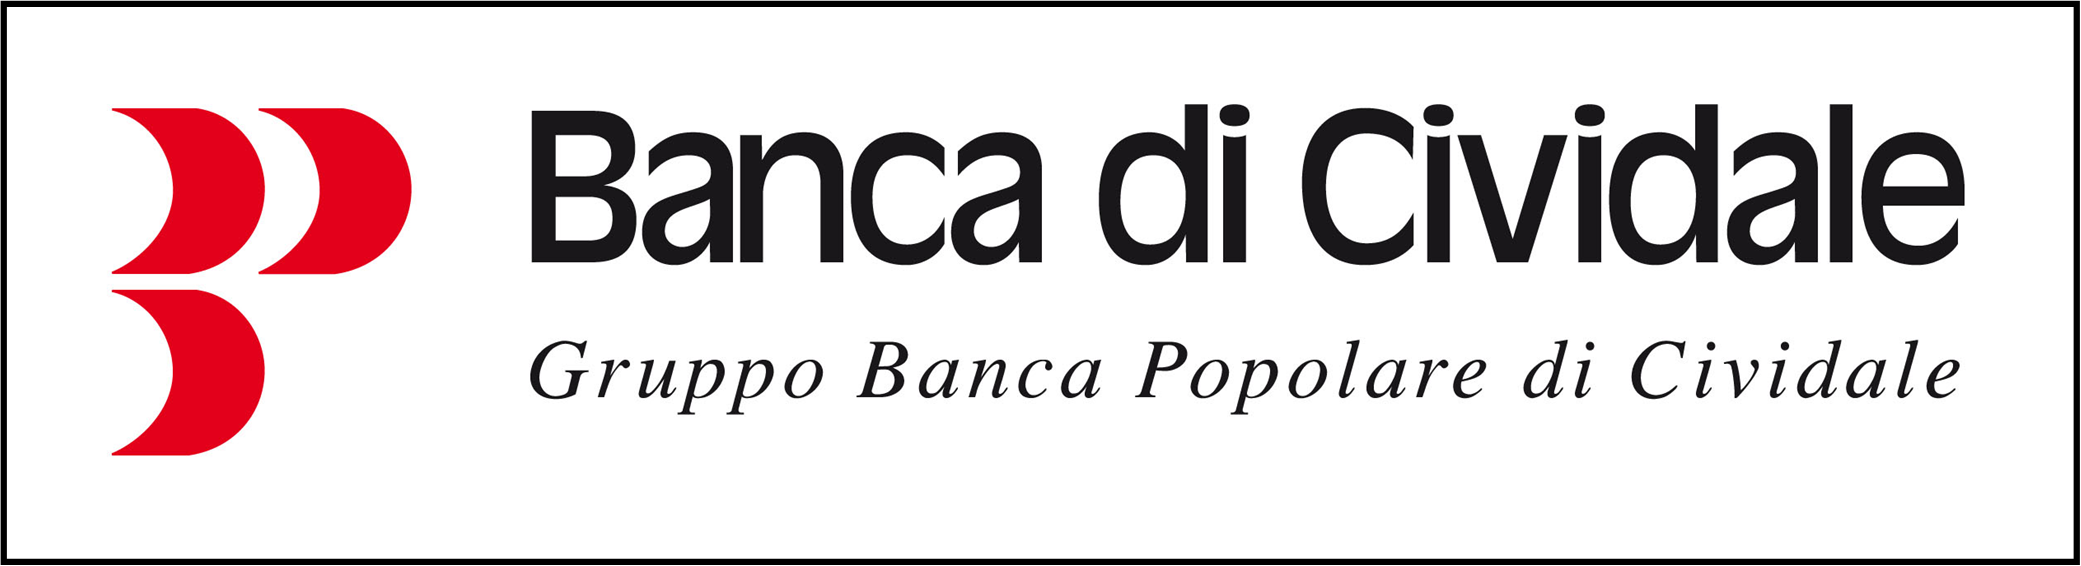 Banka di Cividale Logo photo - 1